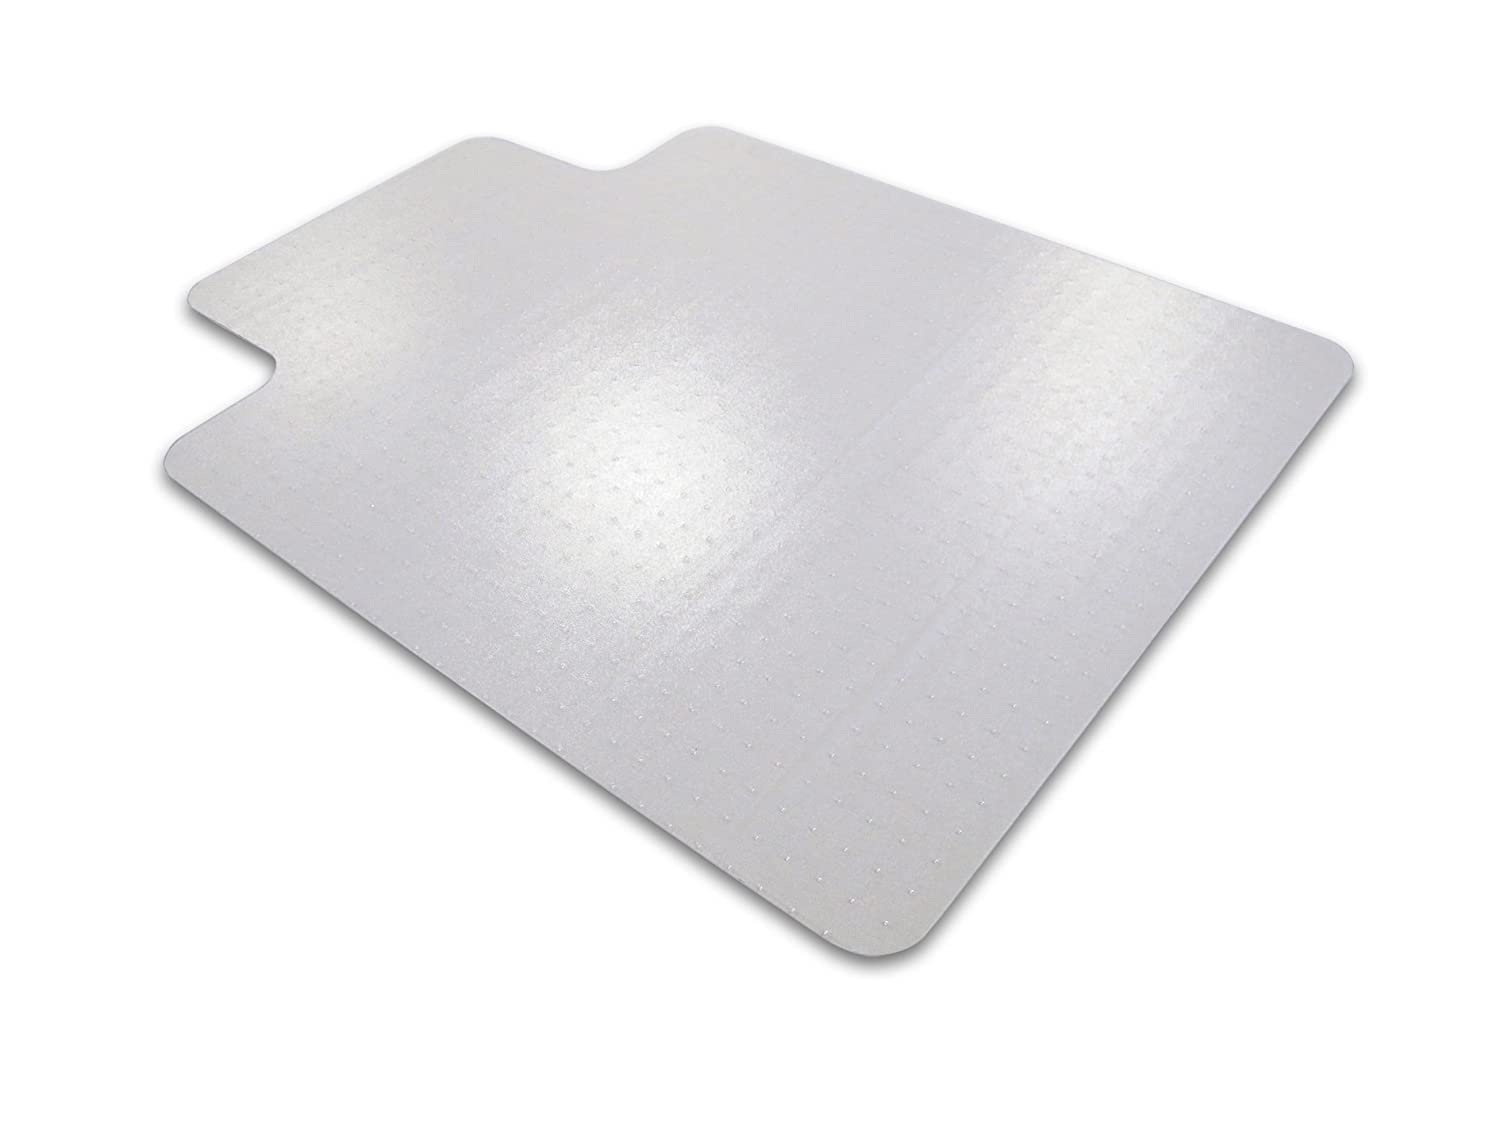 amazon com cleartex ultimat chair mat clear polycarbonate for